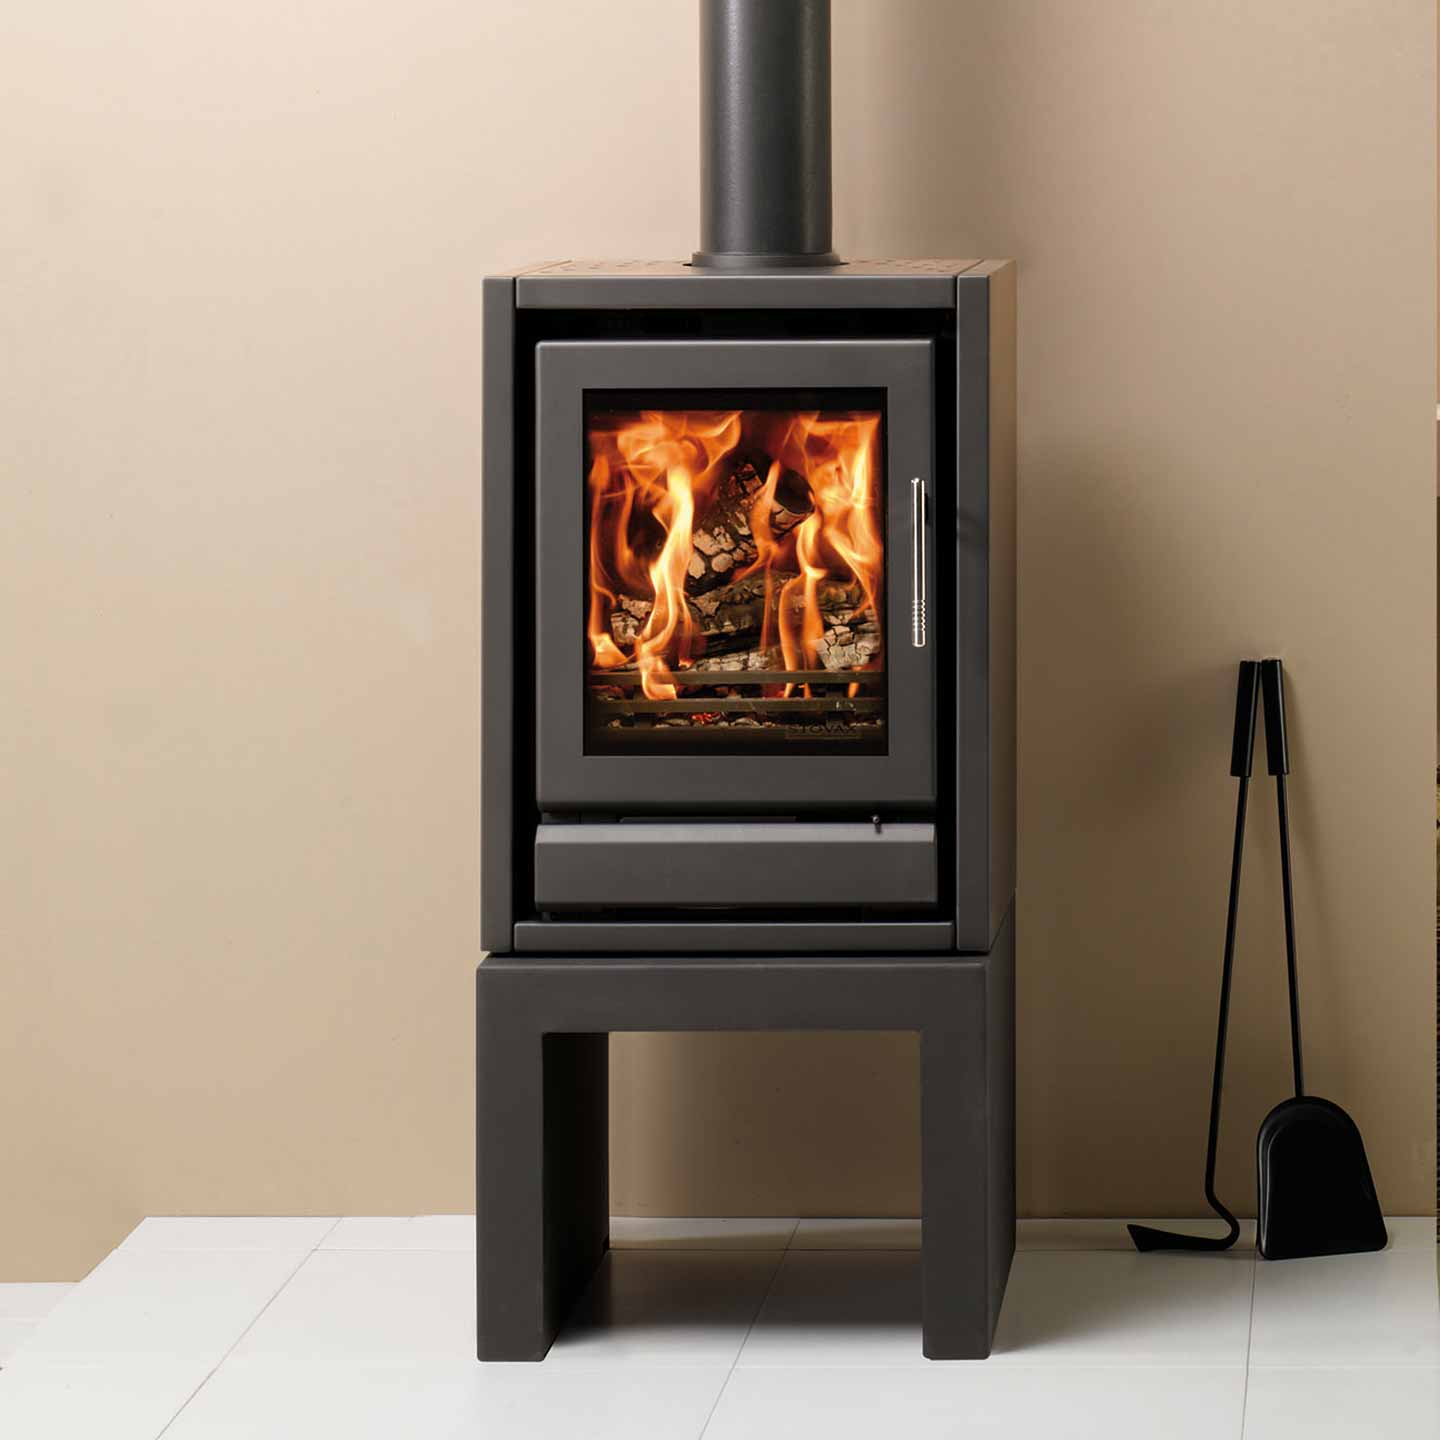 Stovax Riva F40 Multi Fuel Stove Approved Dealer